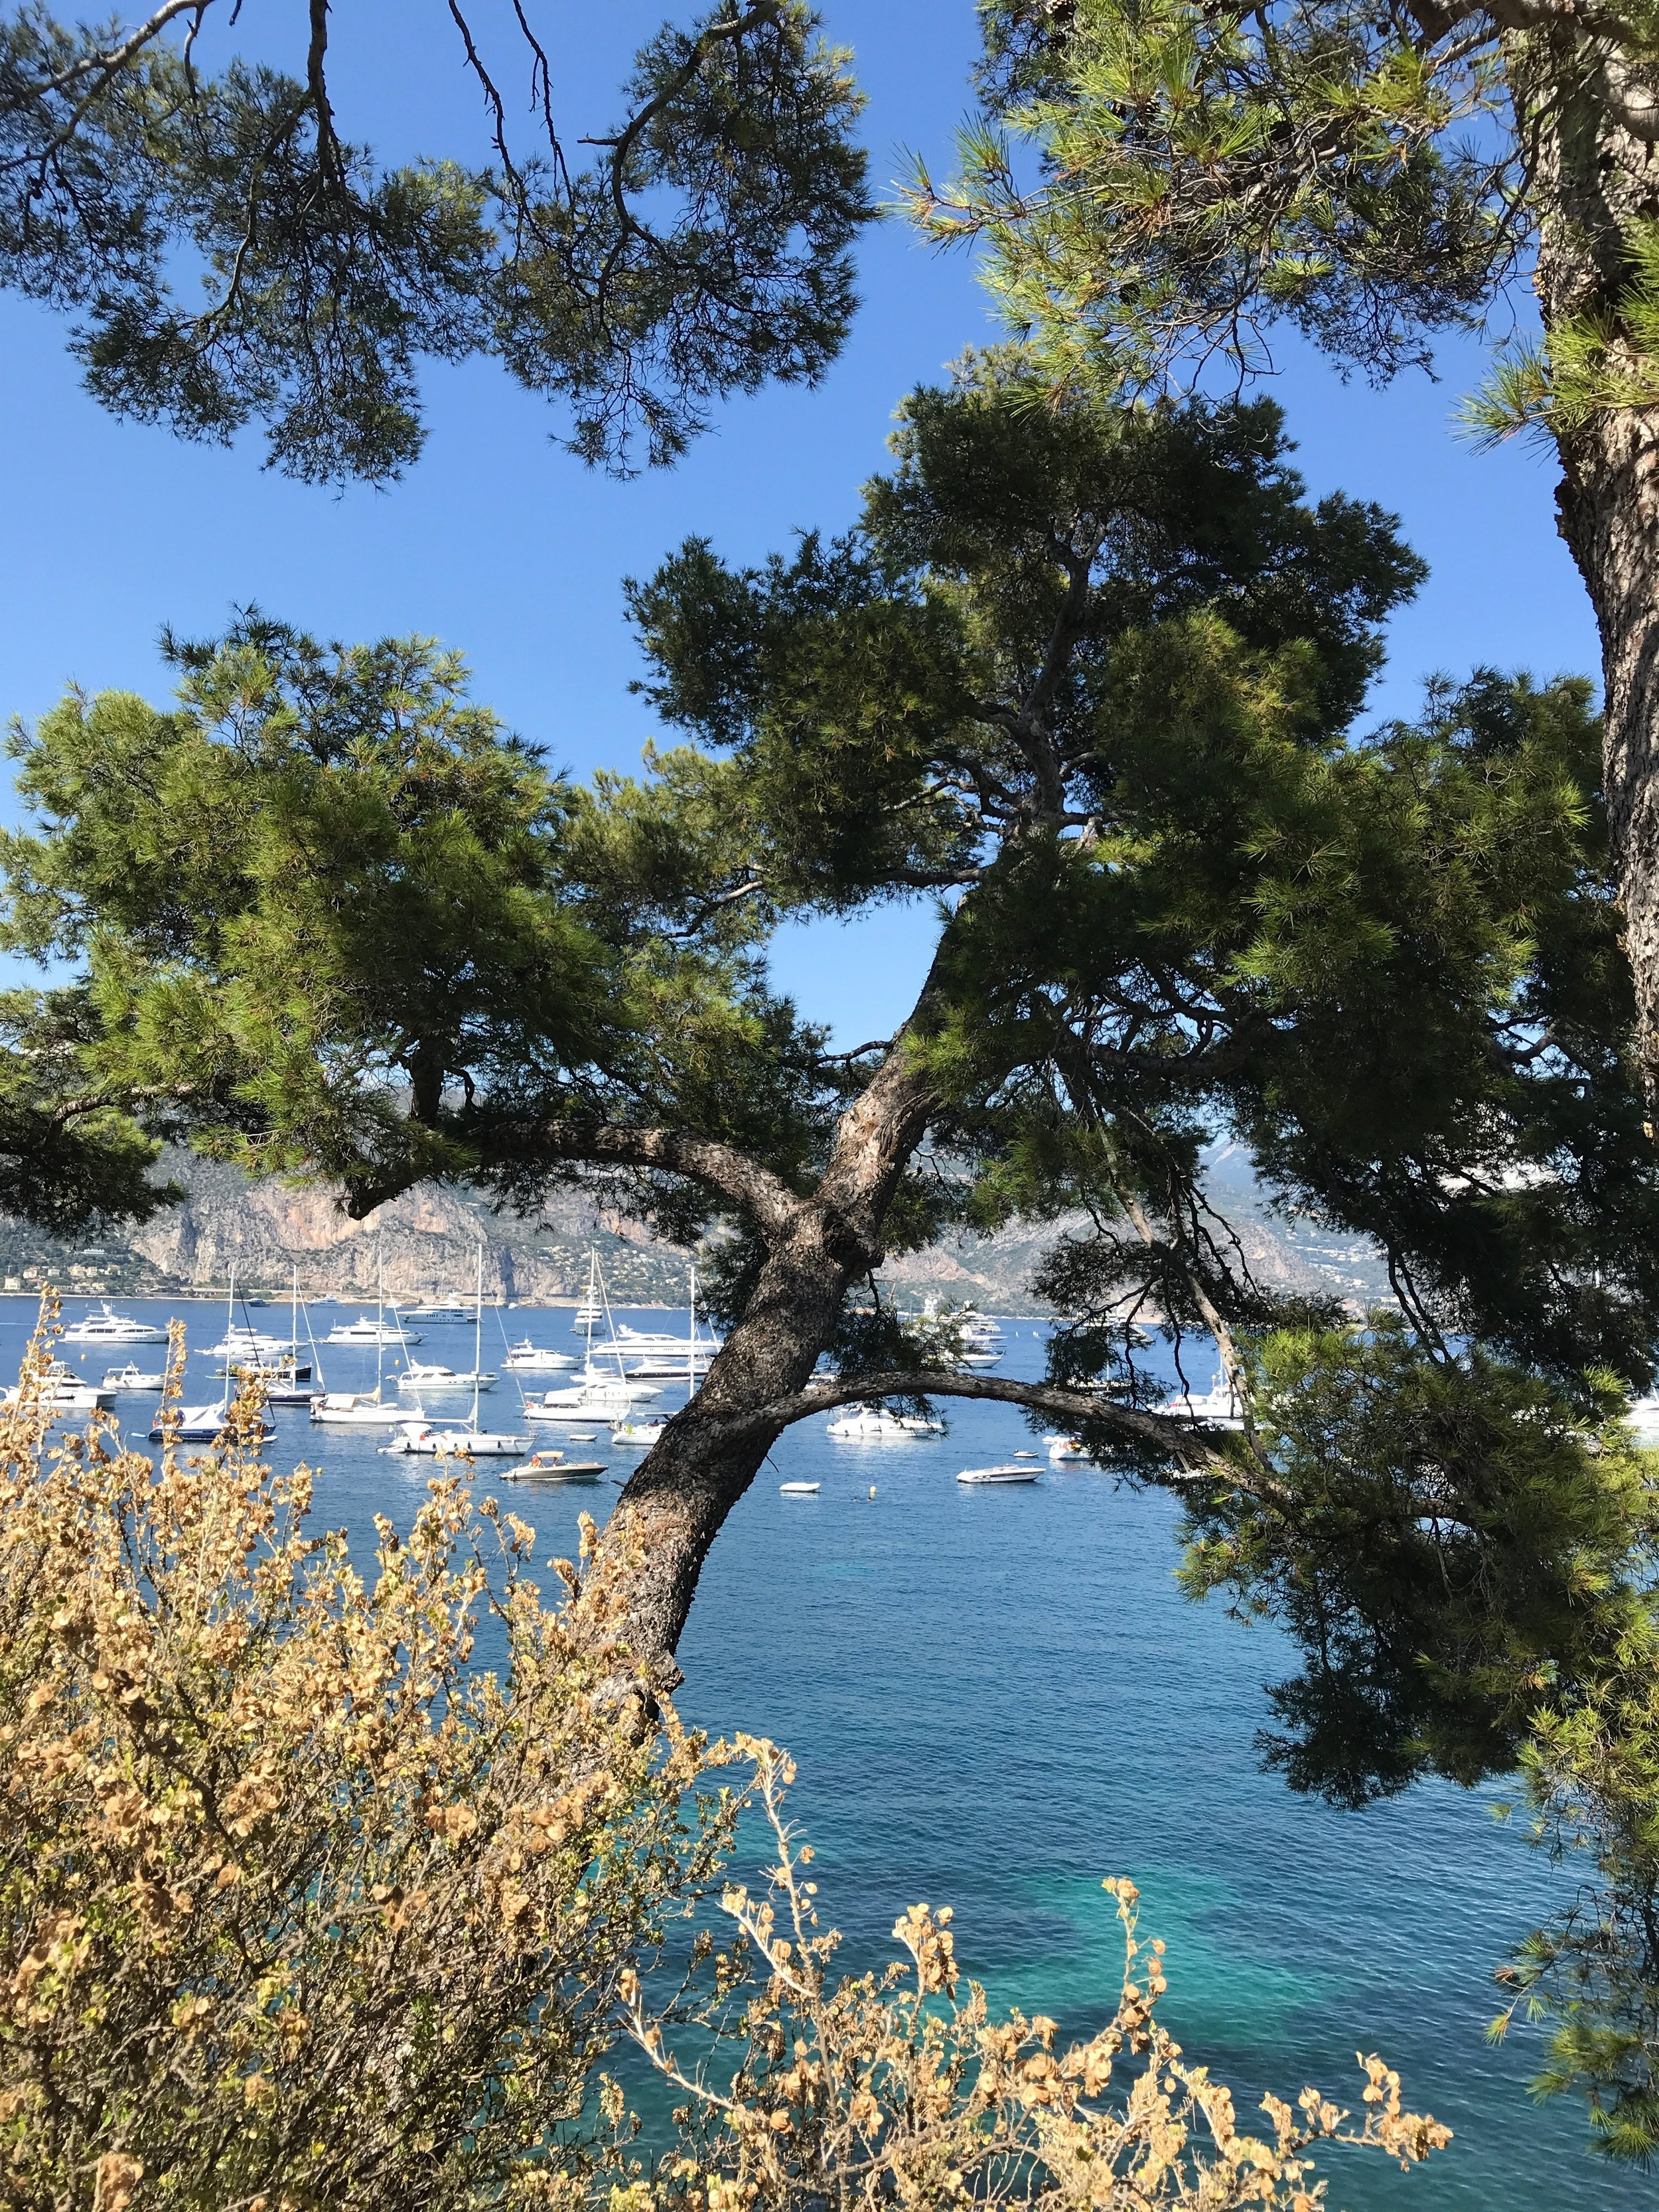 It is called the Cote D'Azur for a reason ... perhaps one of the first memories I have of visiting is the blue seas, blue skies and the general lushness of the countryside.